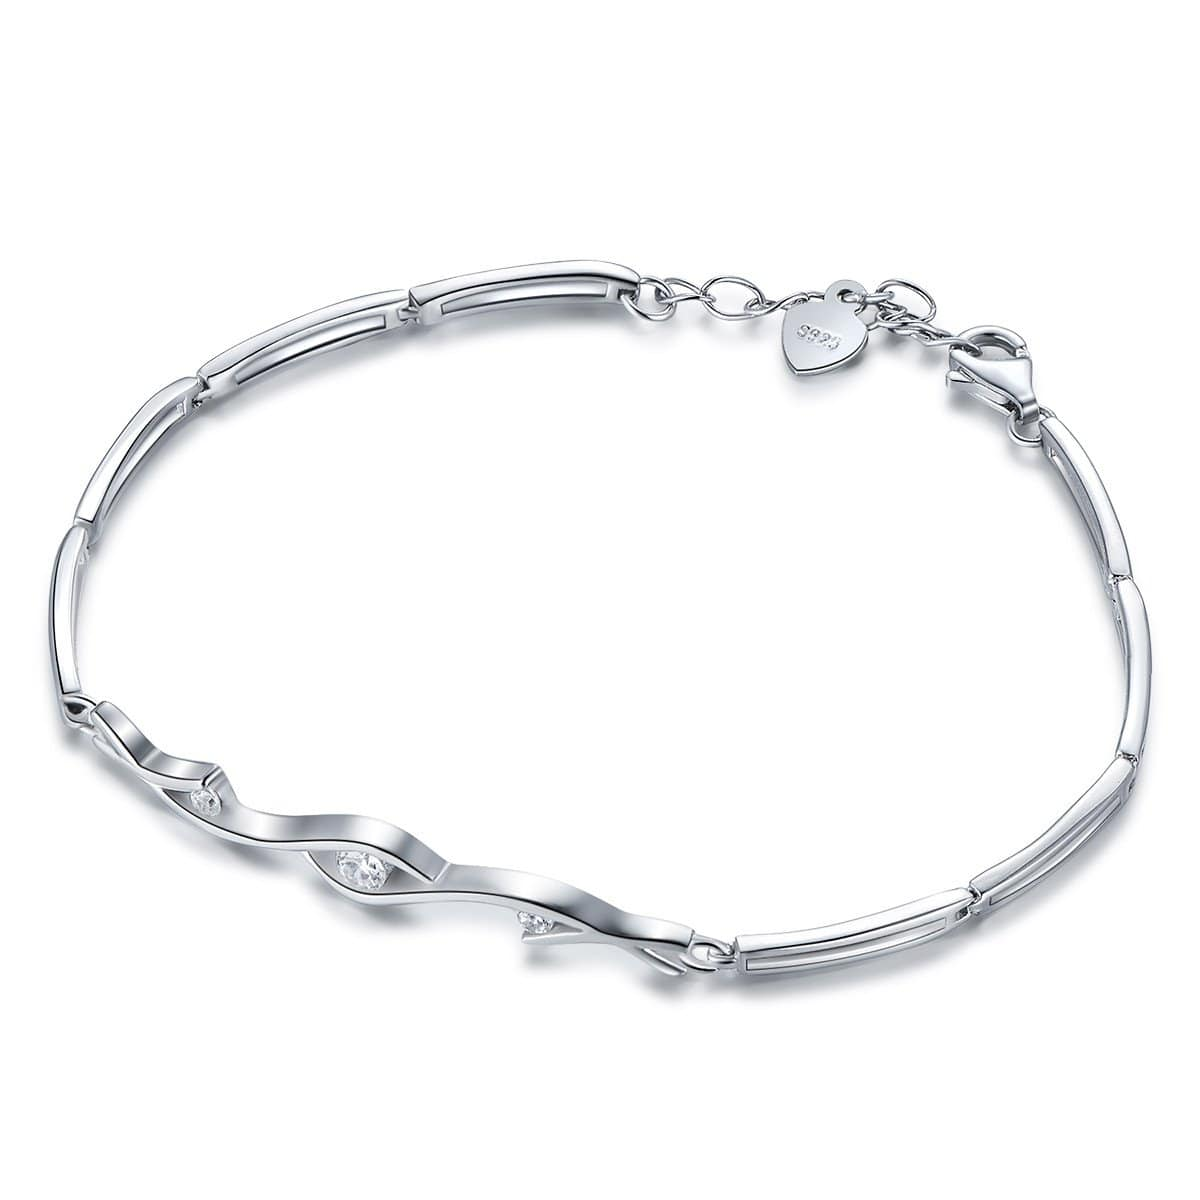 925 sterling silver bracelet women's simple fashion bracelet - EM